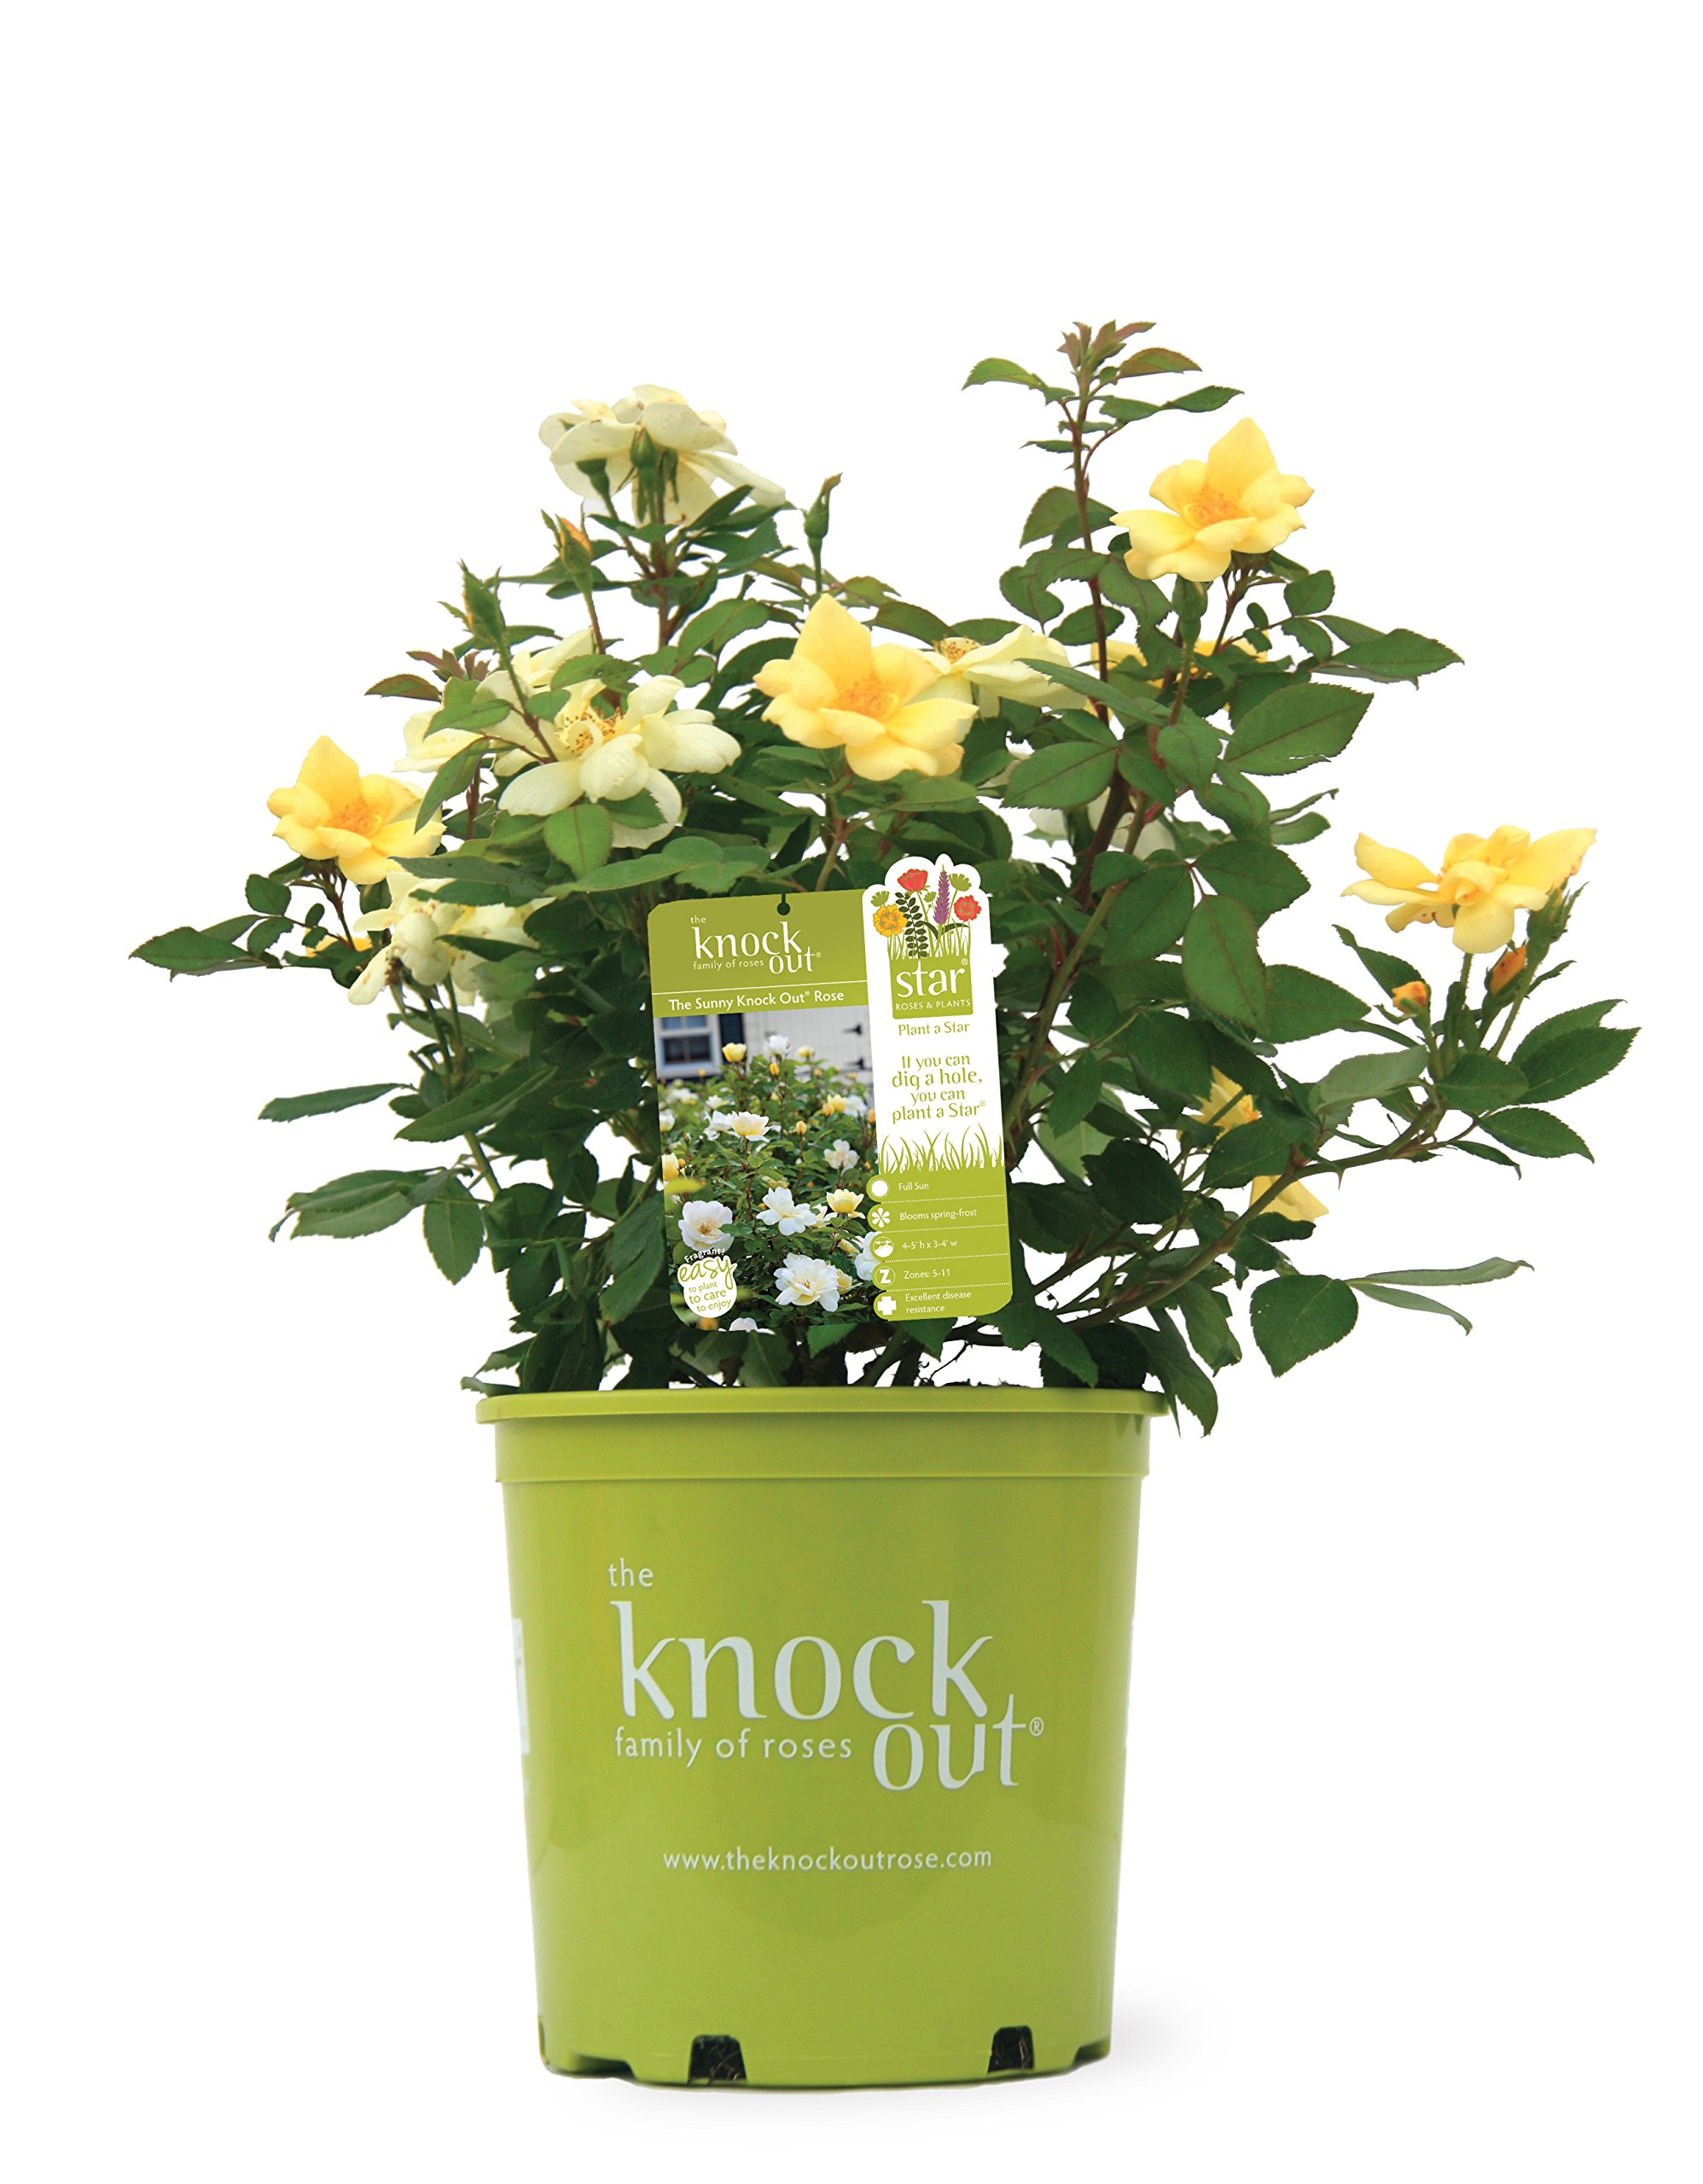 Knock Out Roses - Rosa Sunny Knock Out (Rose) Rose, Yellow Flowers, 3 - Size Container